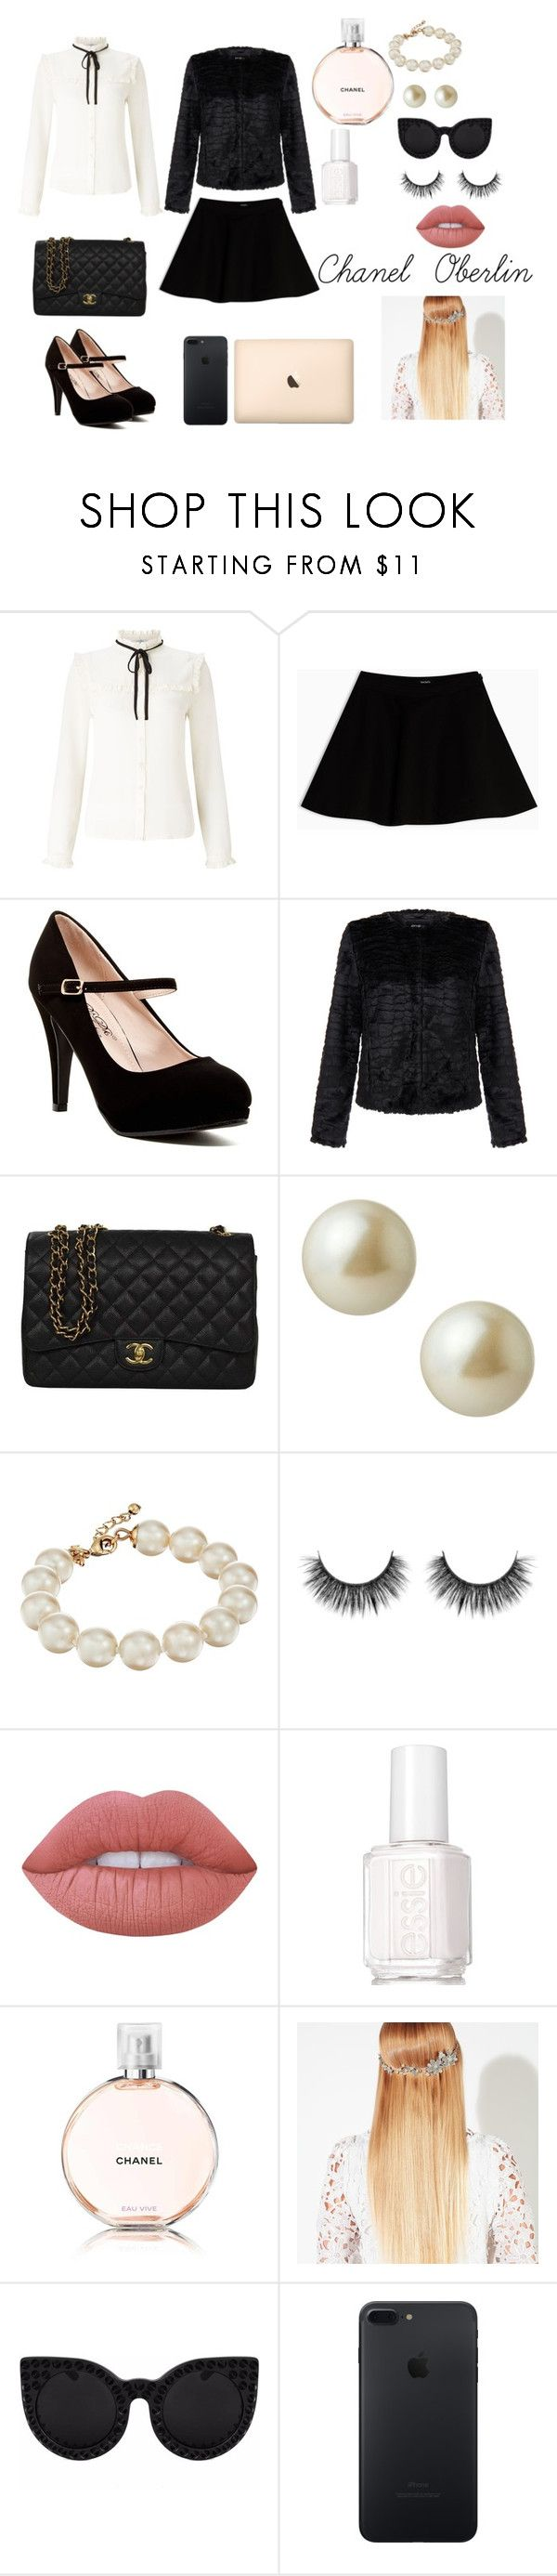 """Chanel Oberlin"" by xxxjazzyxxx01xxx ❤ liked on Polyvore featuring Lipsy, Max&Co., Unreal Fur, Chanel, Carolee, Kate Spade, Lime Crime, Essie, John Lewis and Delalle"